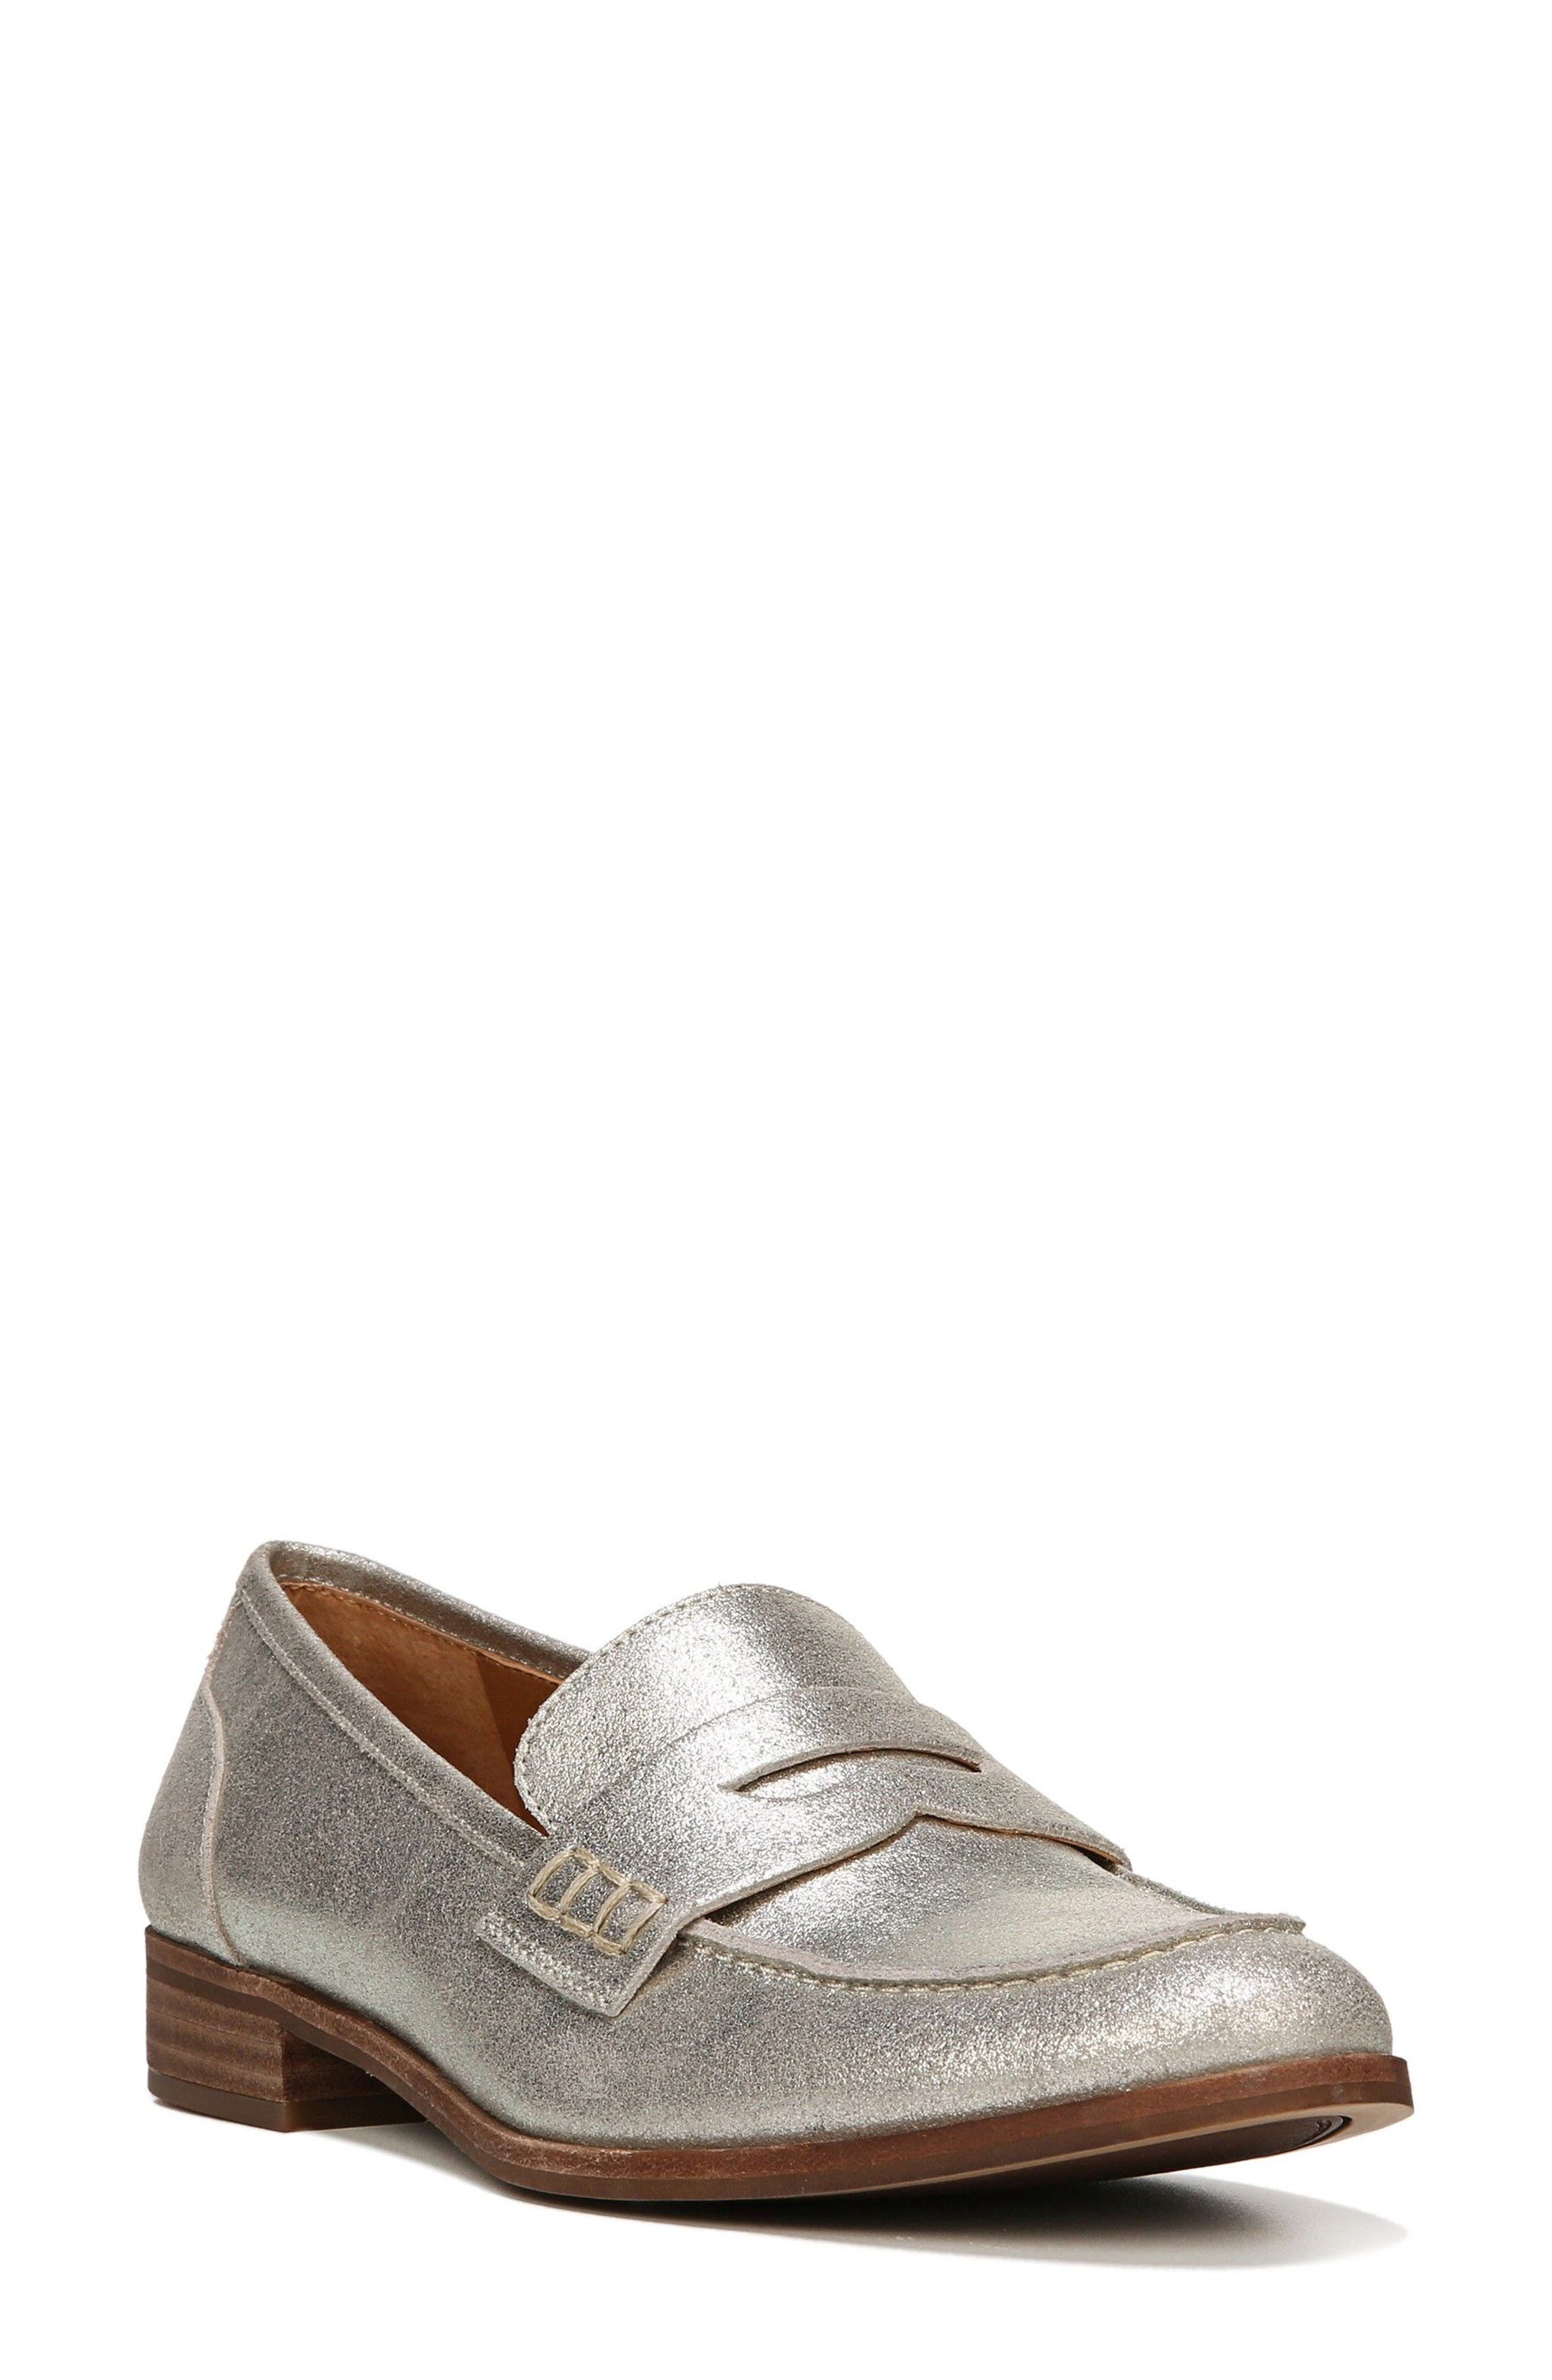 'Jolette' Penny Loafer,                             Main thumbnail 13, color,